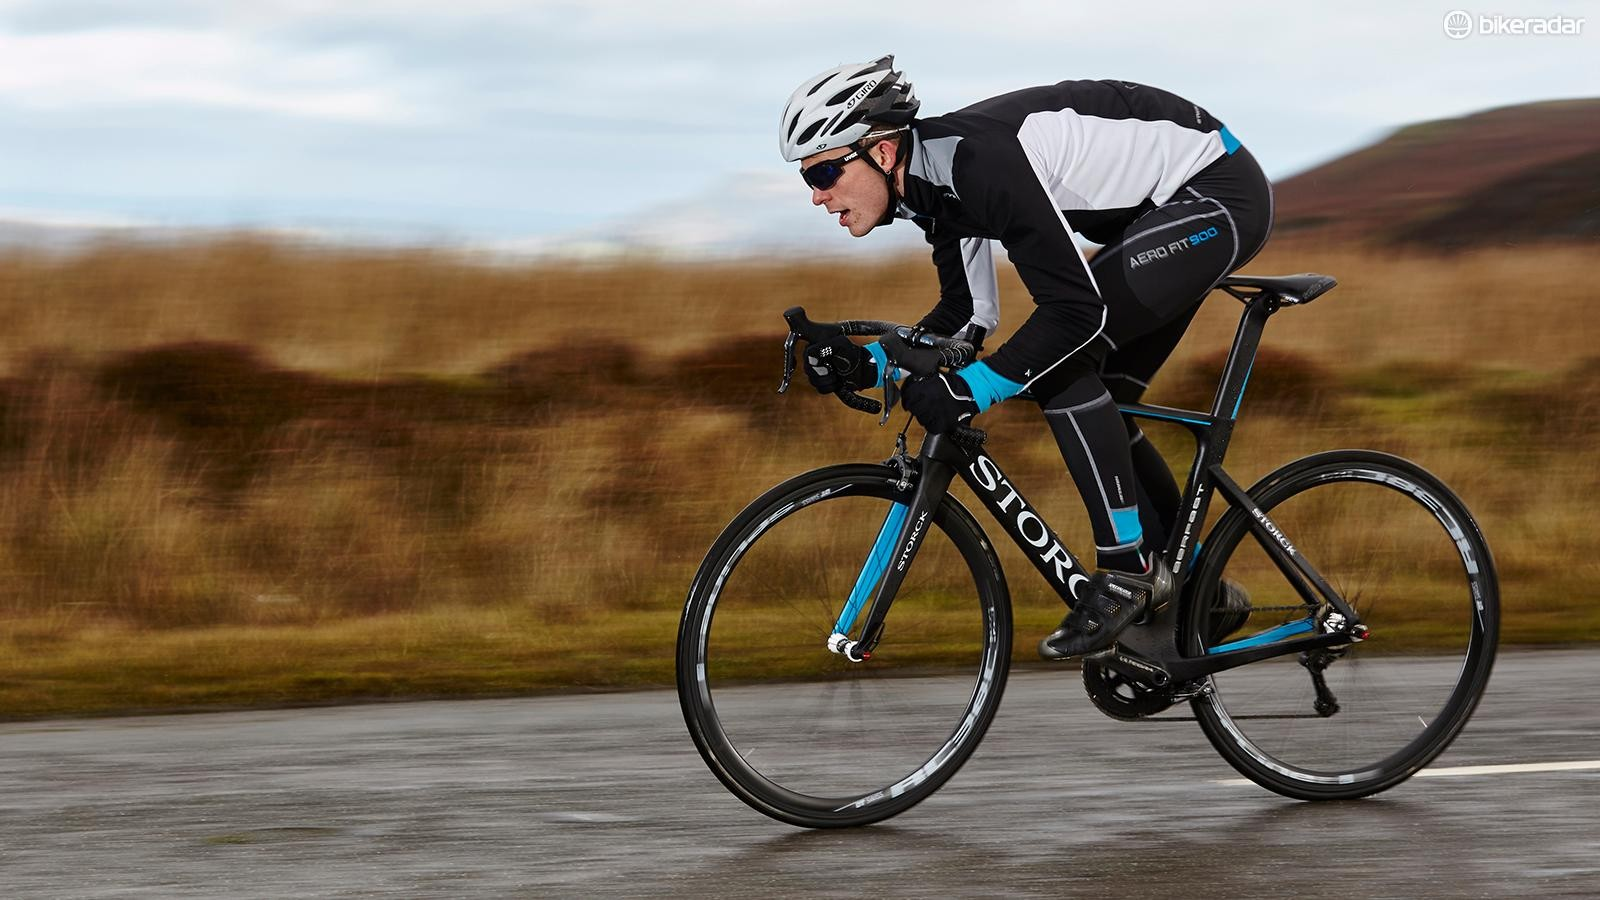 The Storck Aerfast Pro may be an efficient machine, but its an uncommonly engaging one too